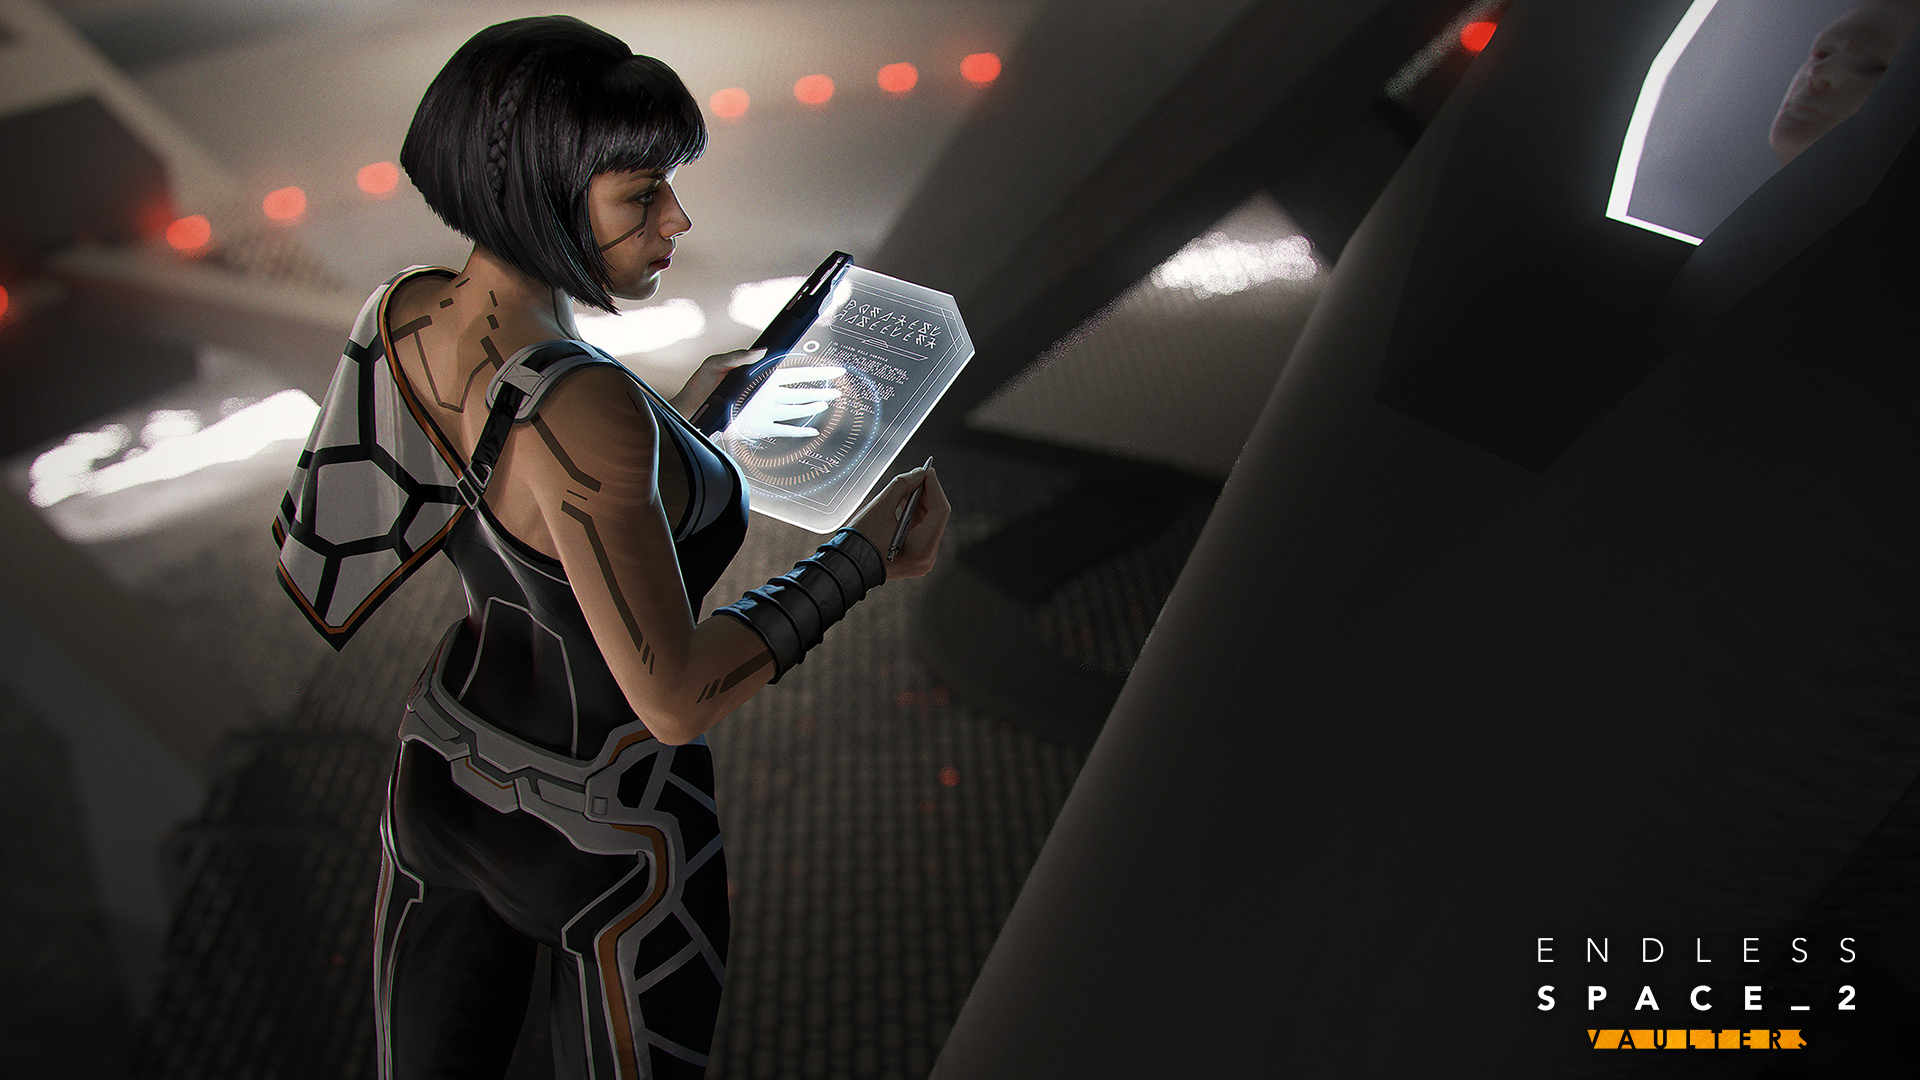 endless space 2 vaulters download